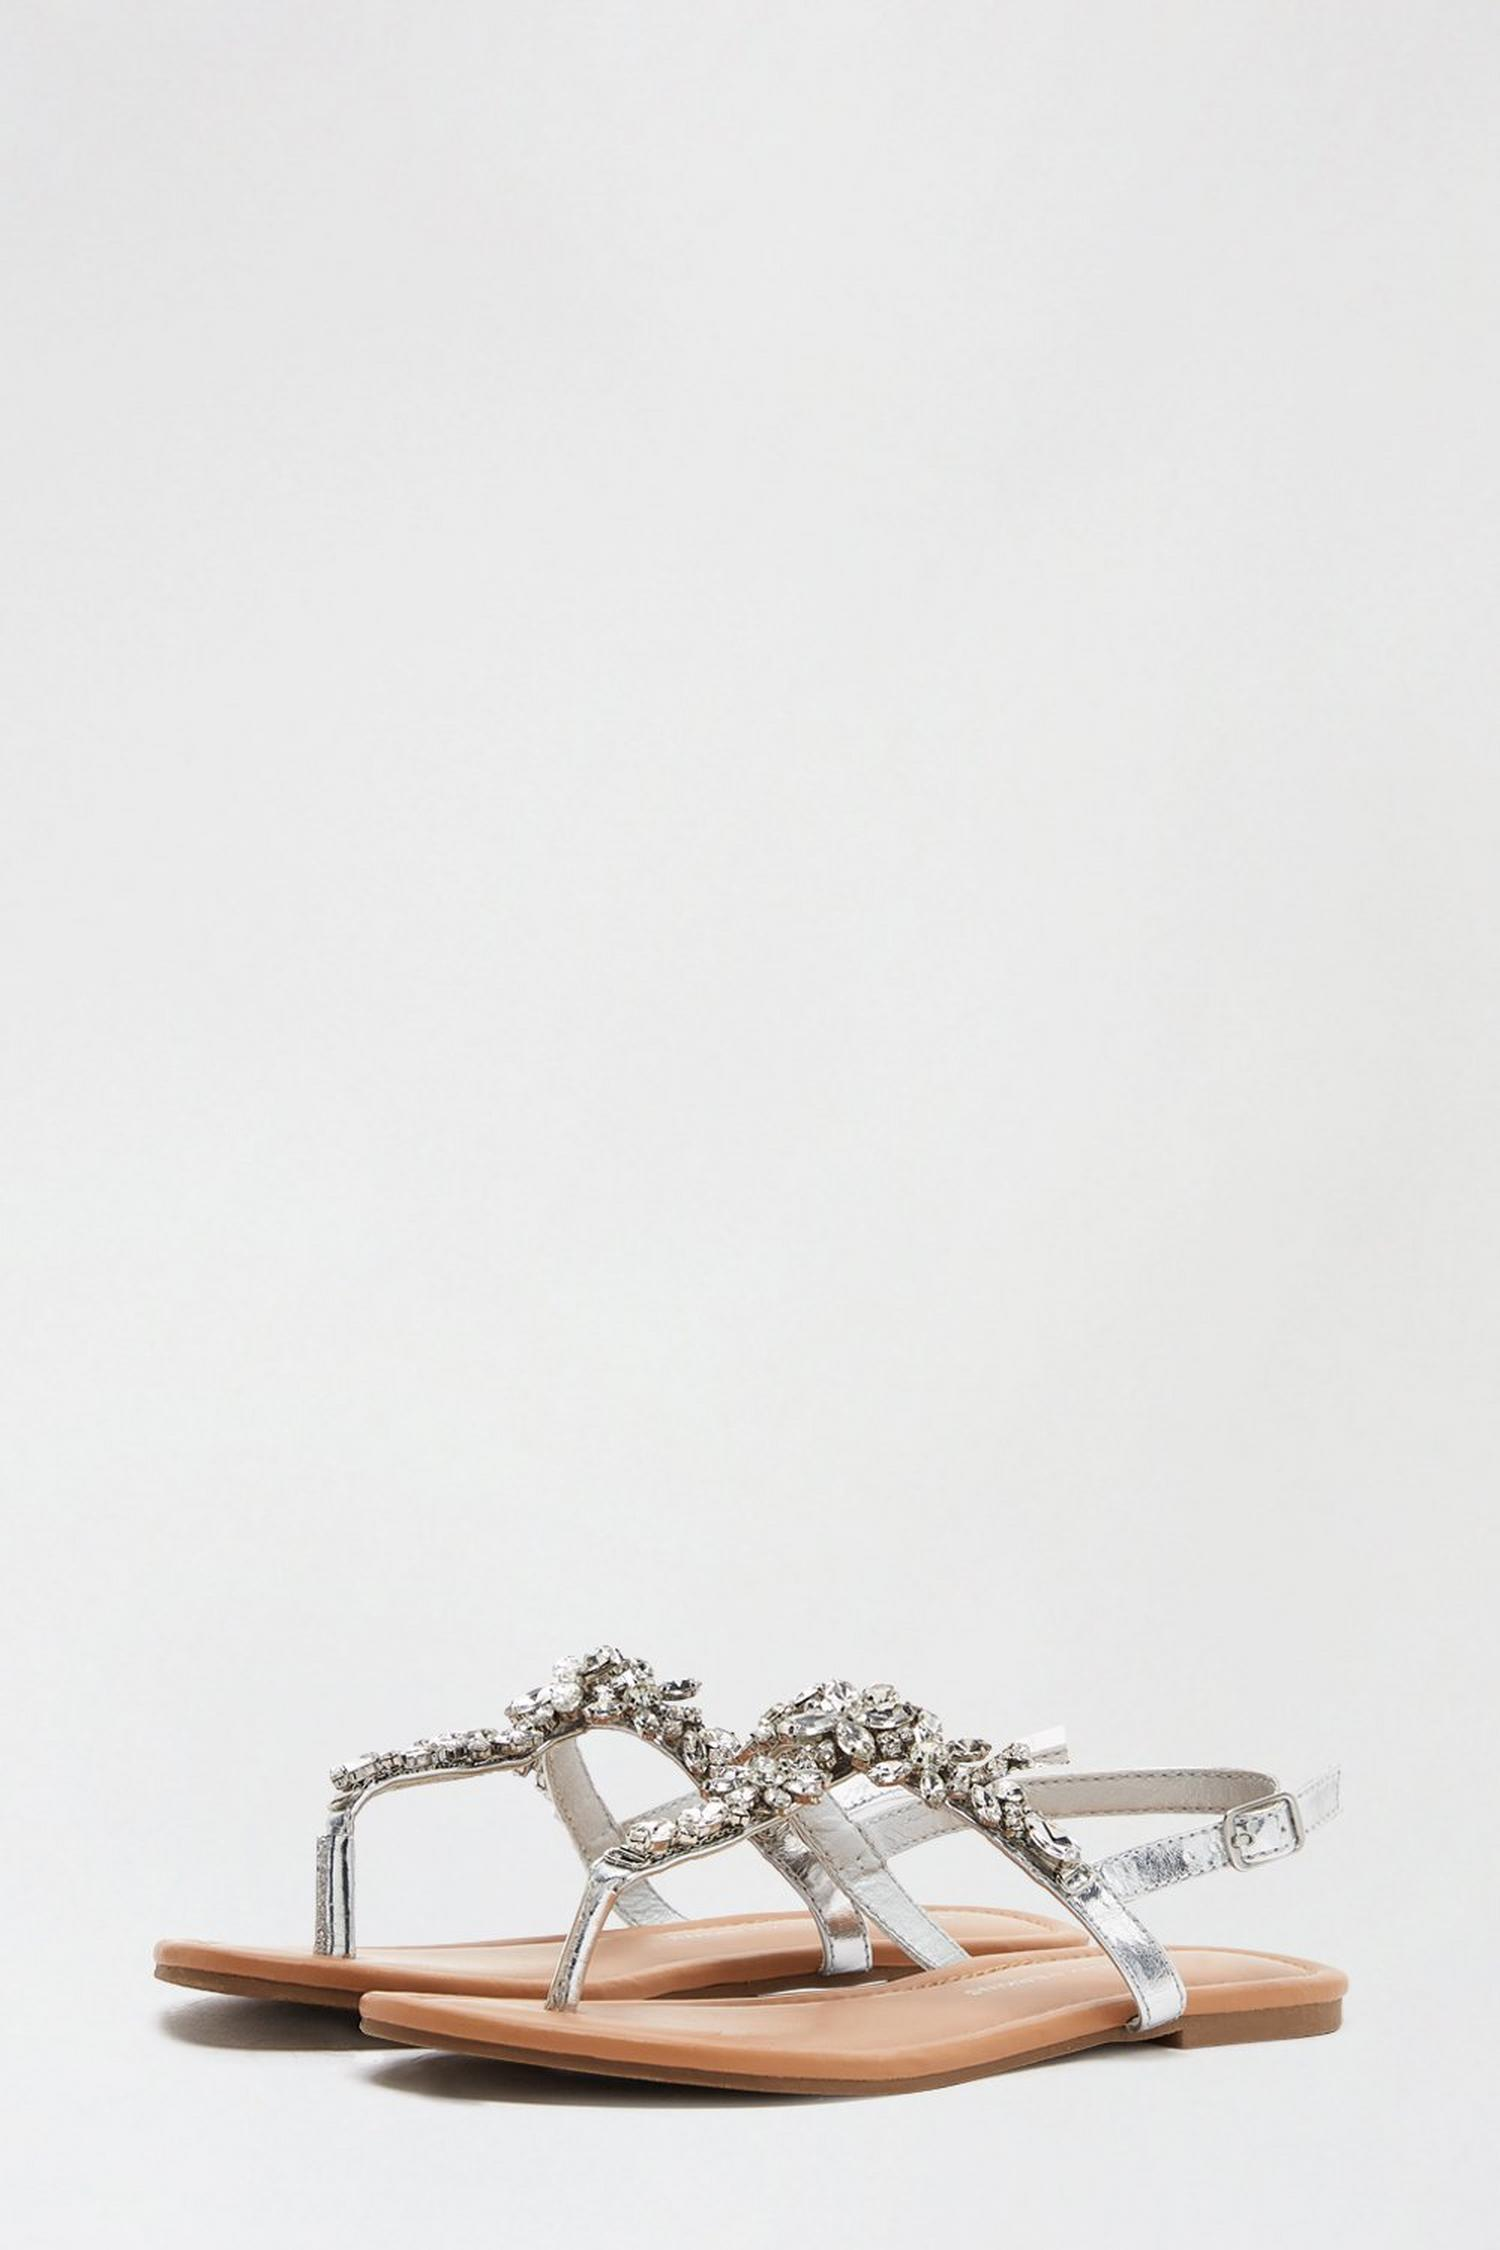 579 Silver Flower Jewel Sandals image number 2